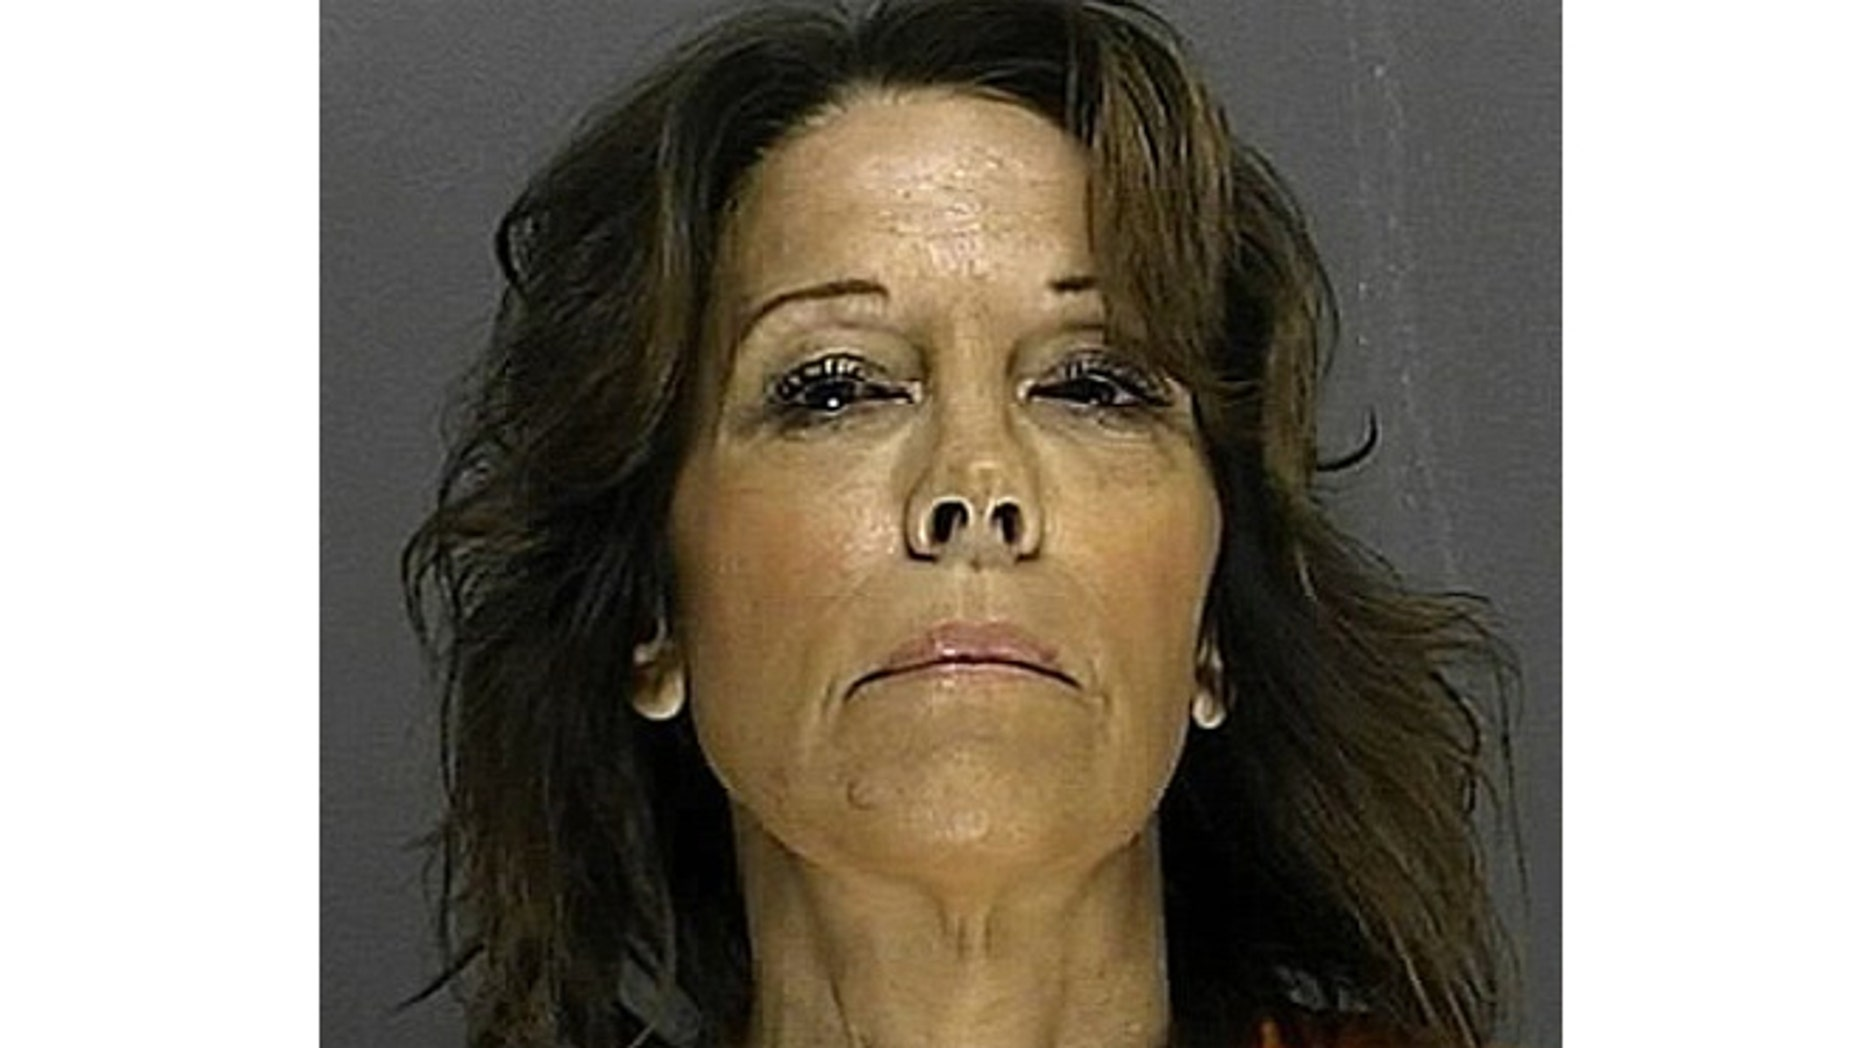 Claudia Ambroziak was arrested after acting out how she says her husband tried to choke her on a police officer.